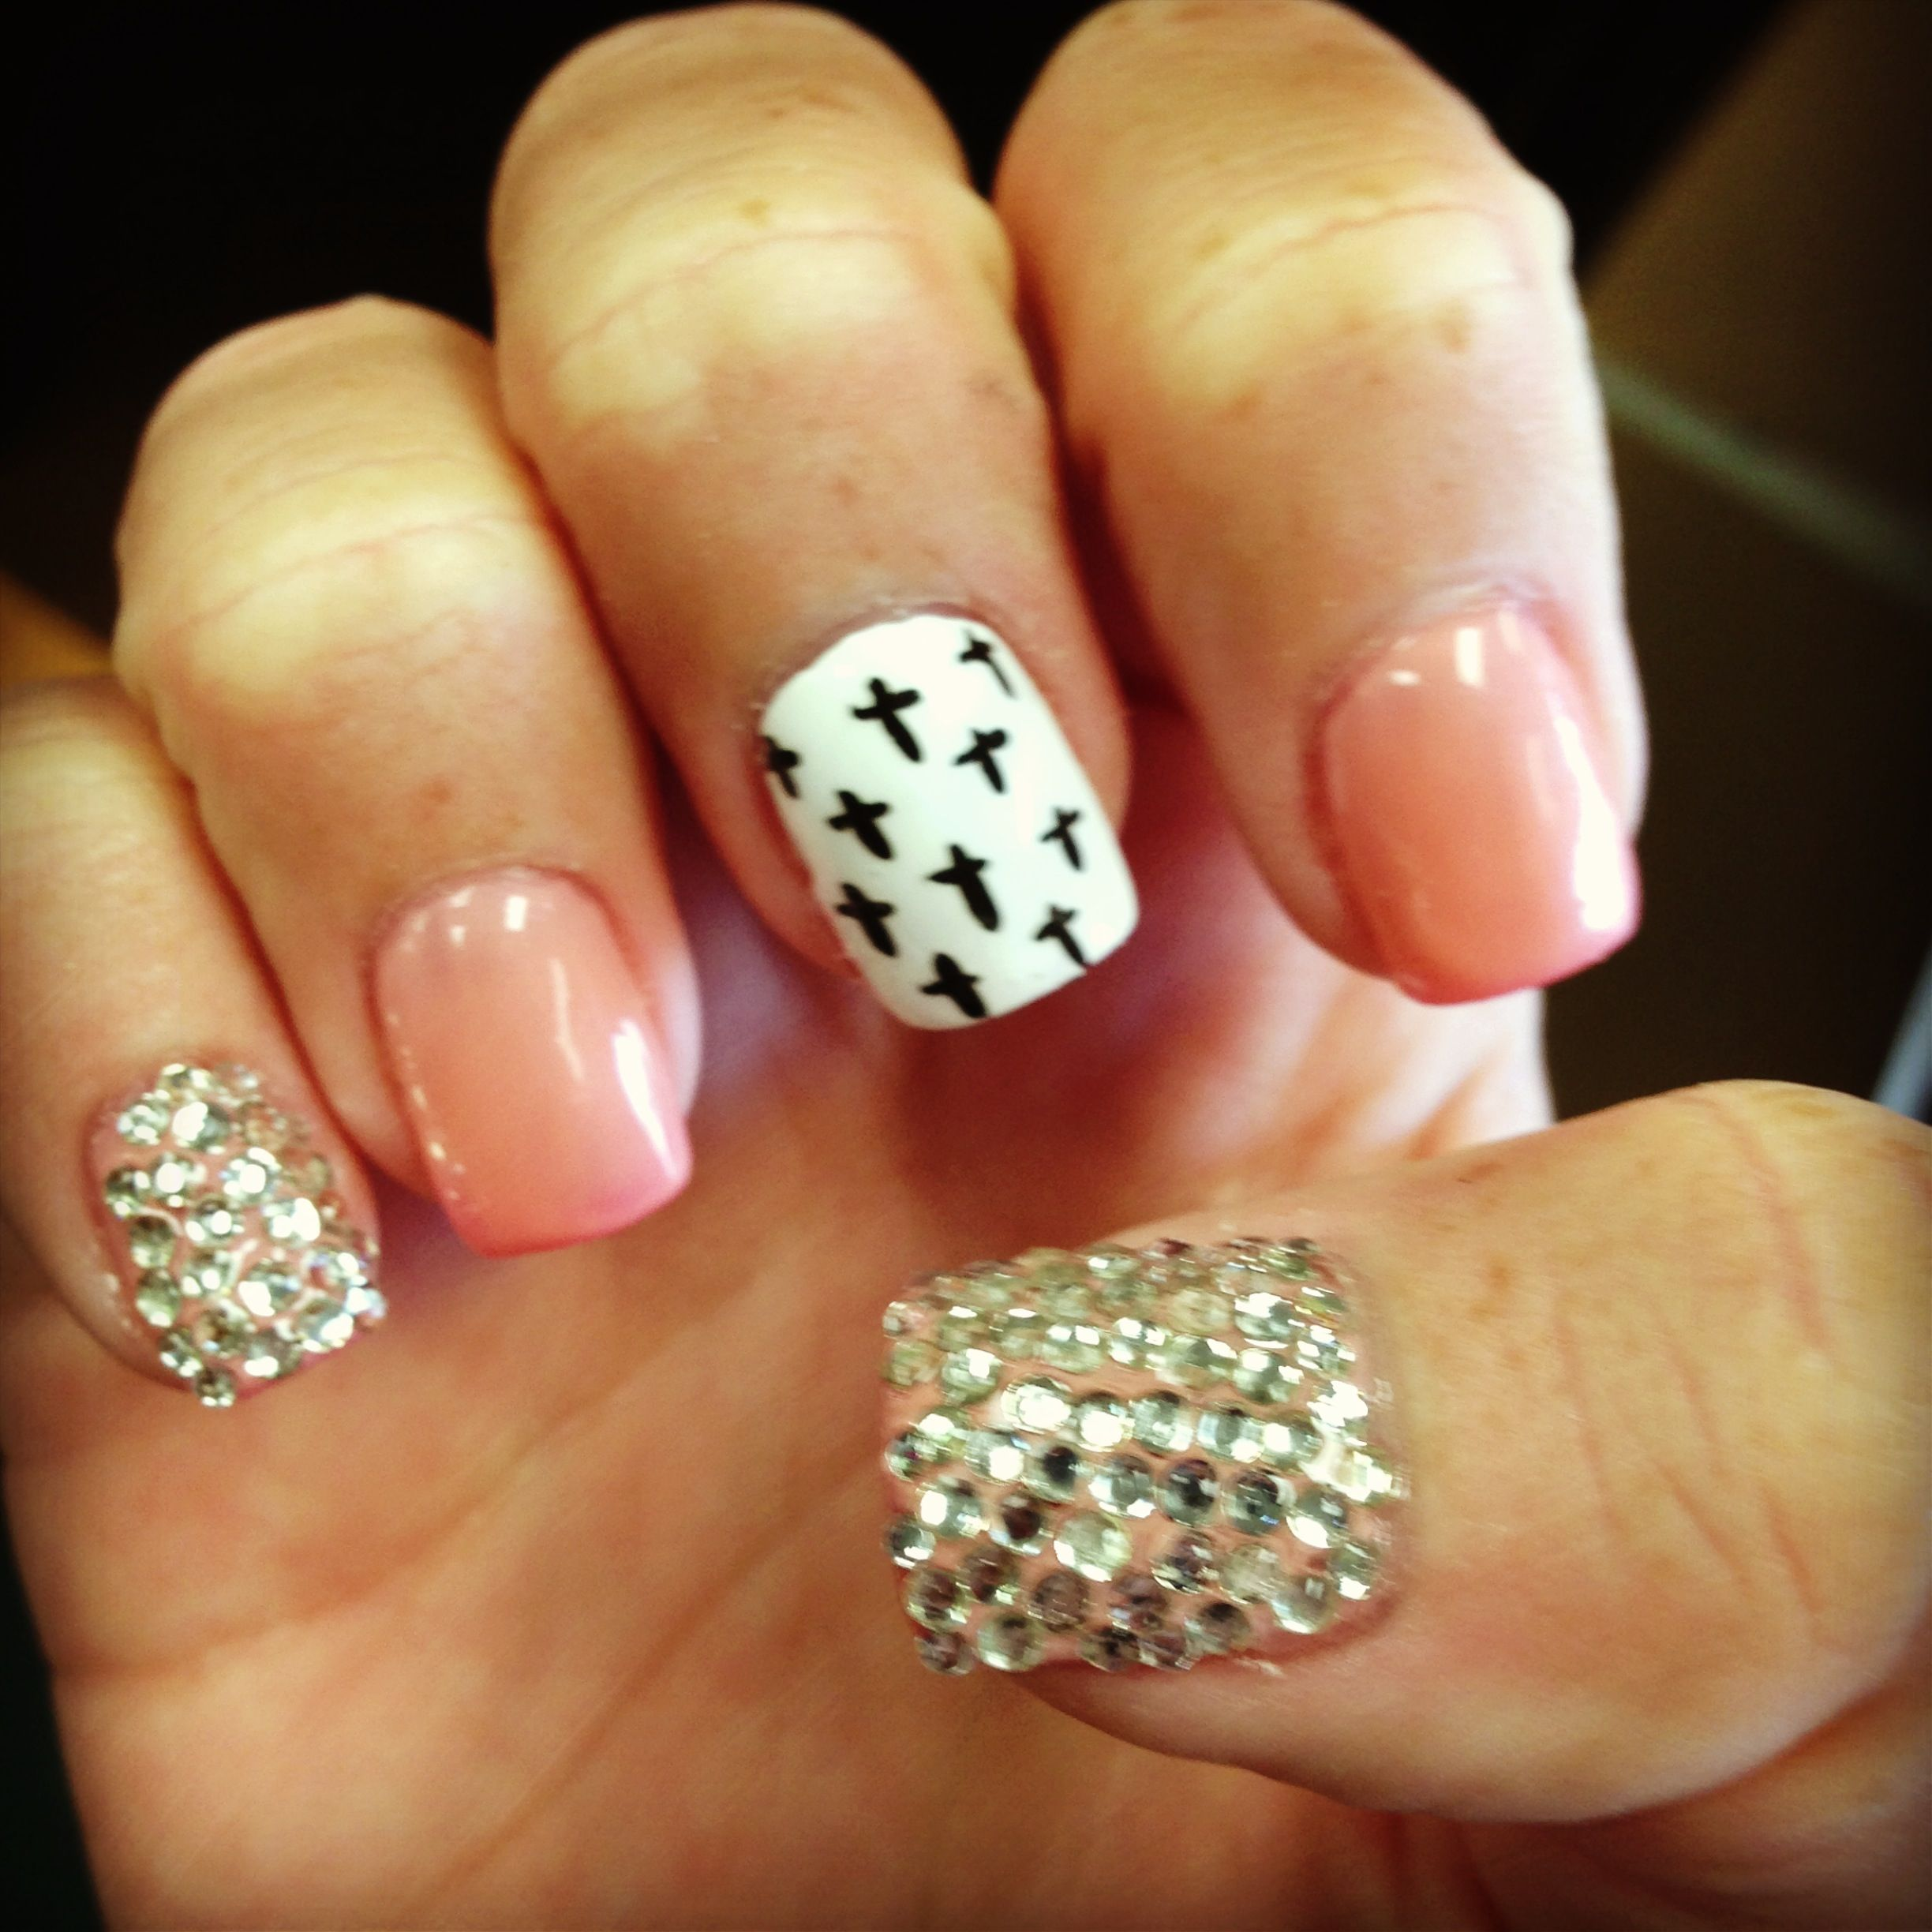 Acrylic Nail Designs With Crosses: Sparkle Pink Cross Nails